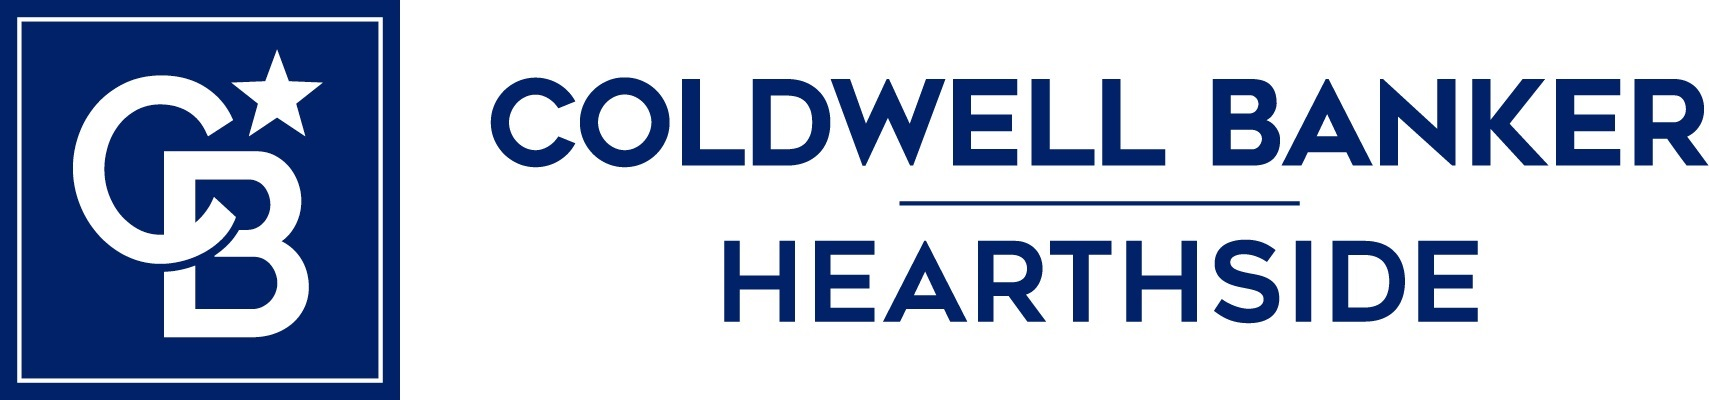 Amy Callum - Coldwell Banker Hearthside